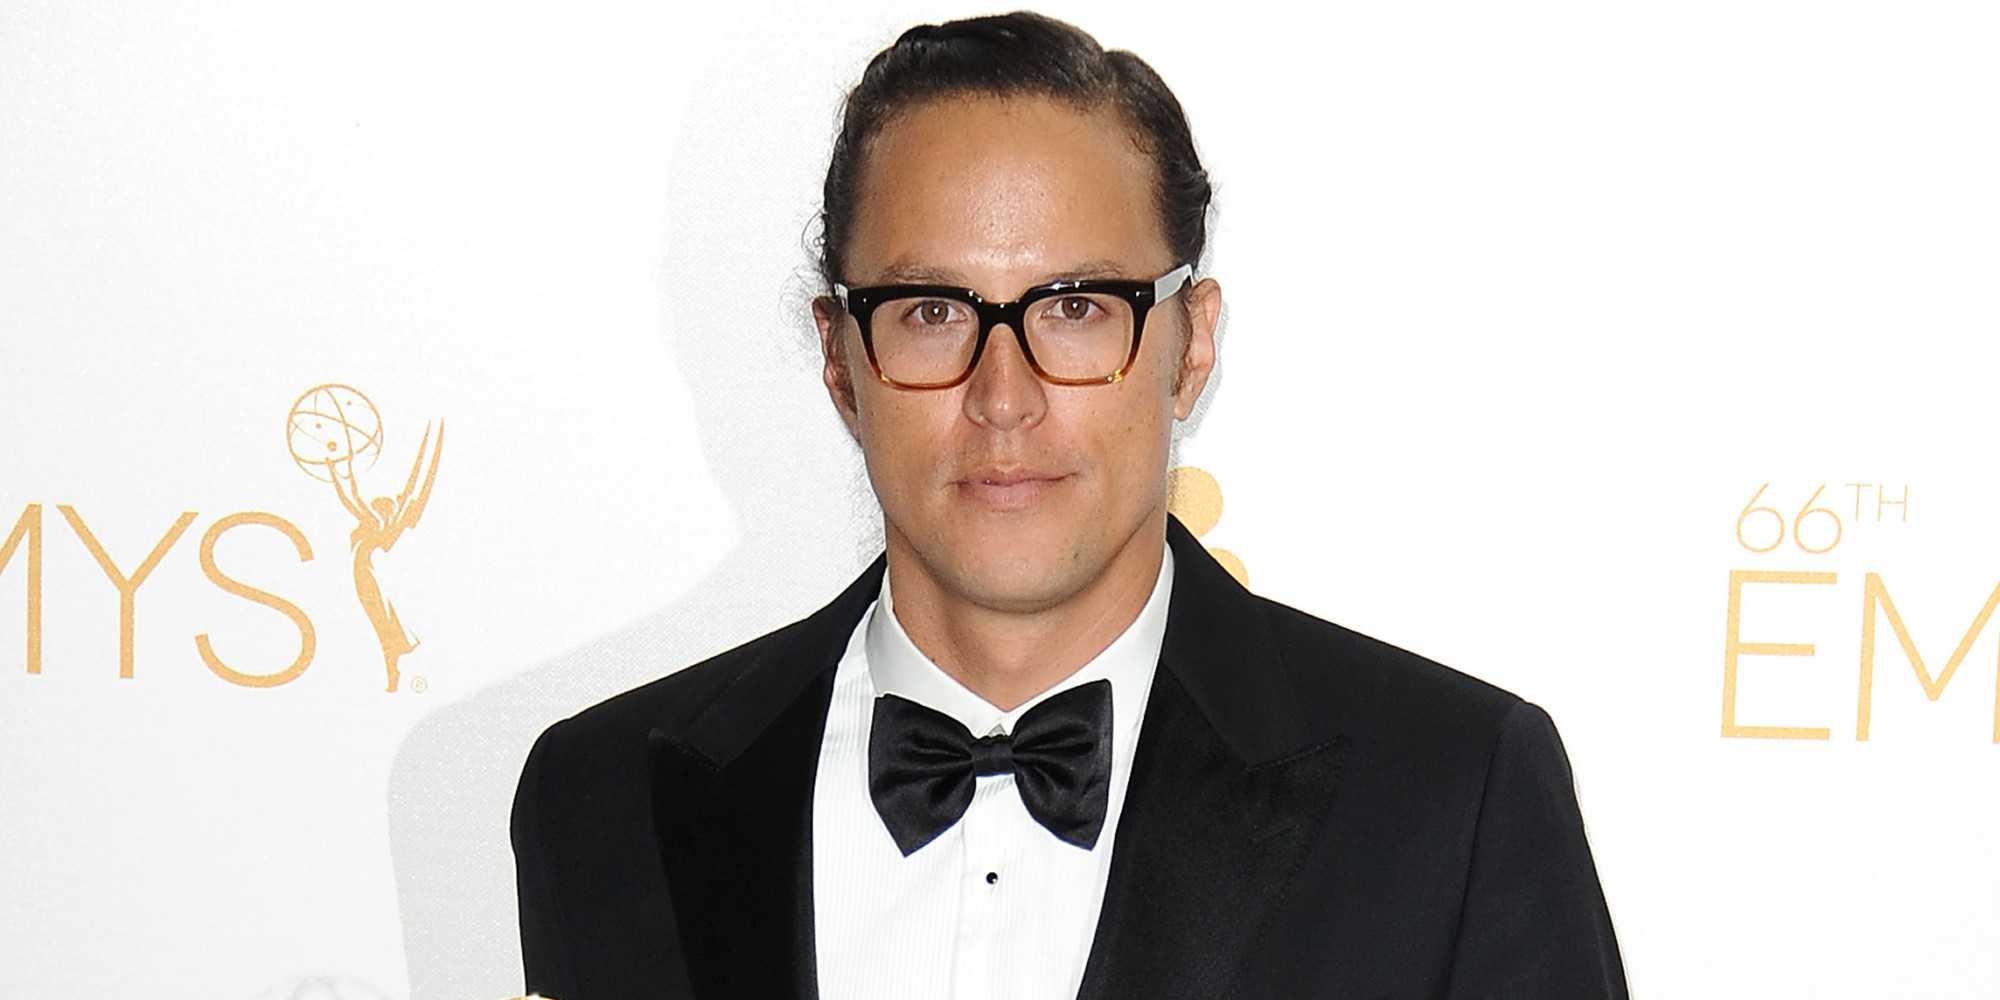 The 40-year old son of father (?) and mother(?), 188 cm tall Cary Fukunaga in 2017 photo